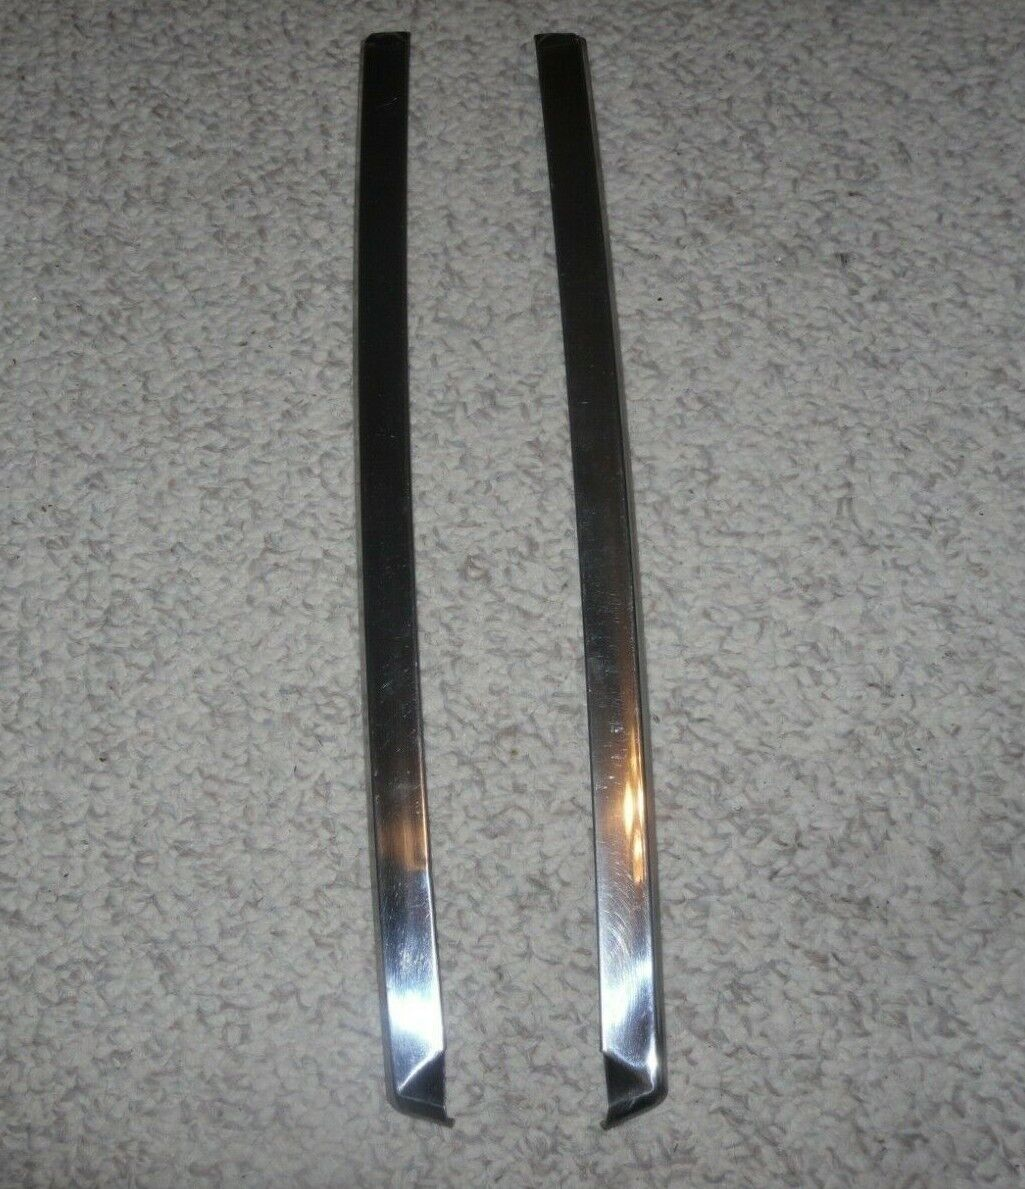 1977 Ford Truck Stainless Windshield Trim : Left & Right sides Moulding Uprights